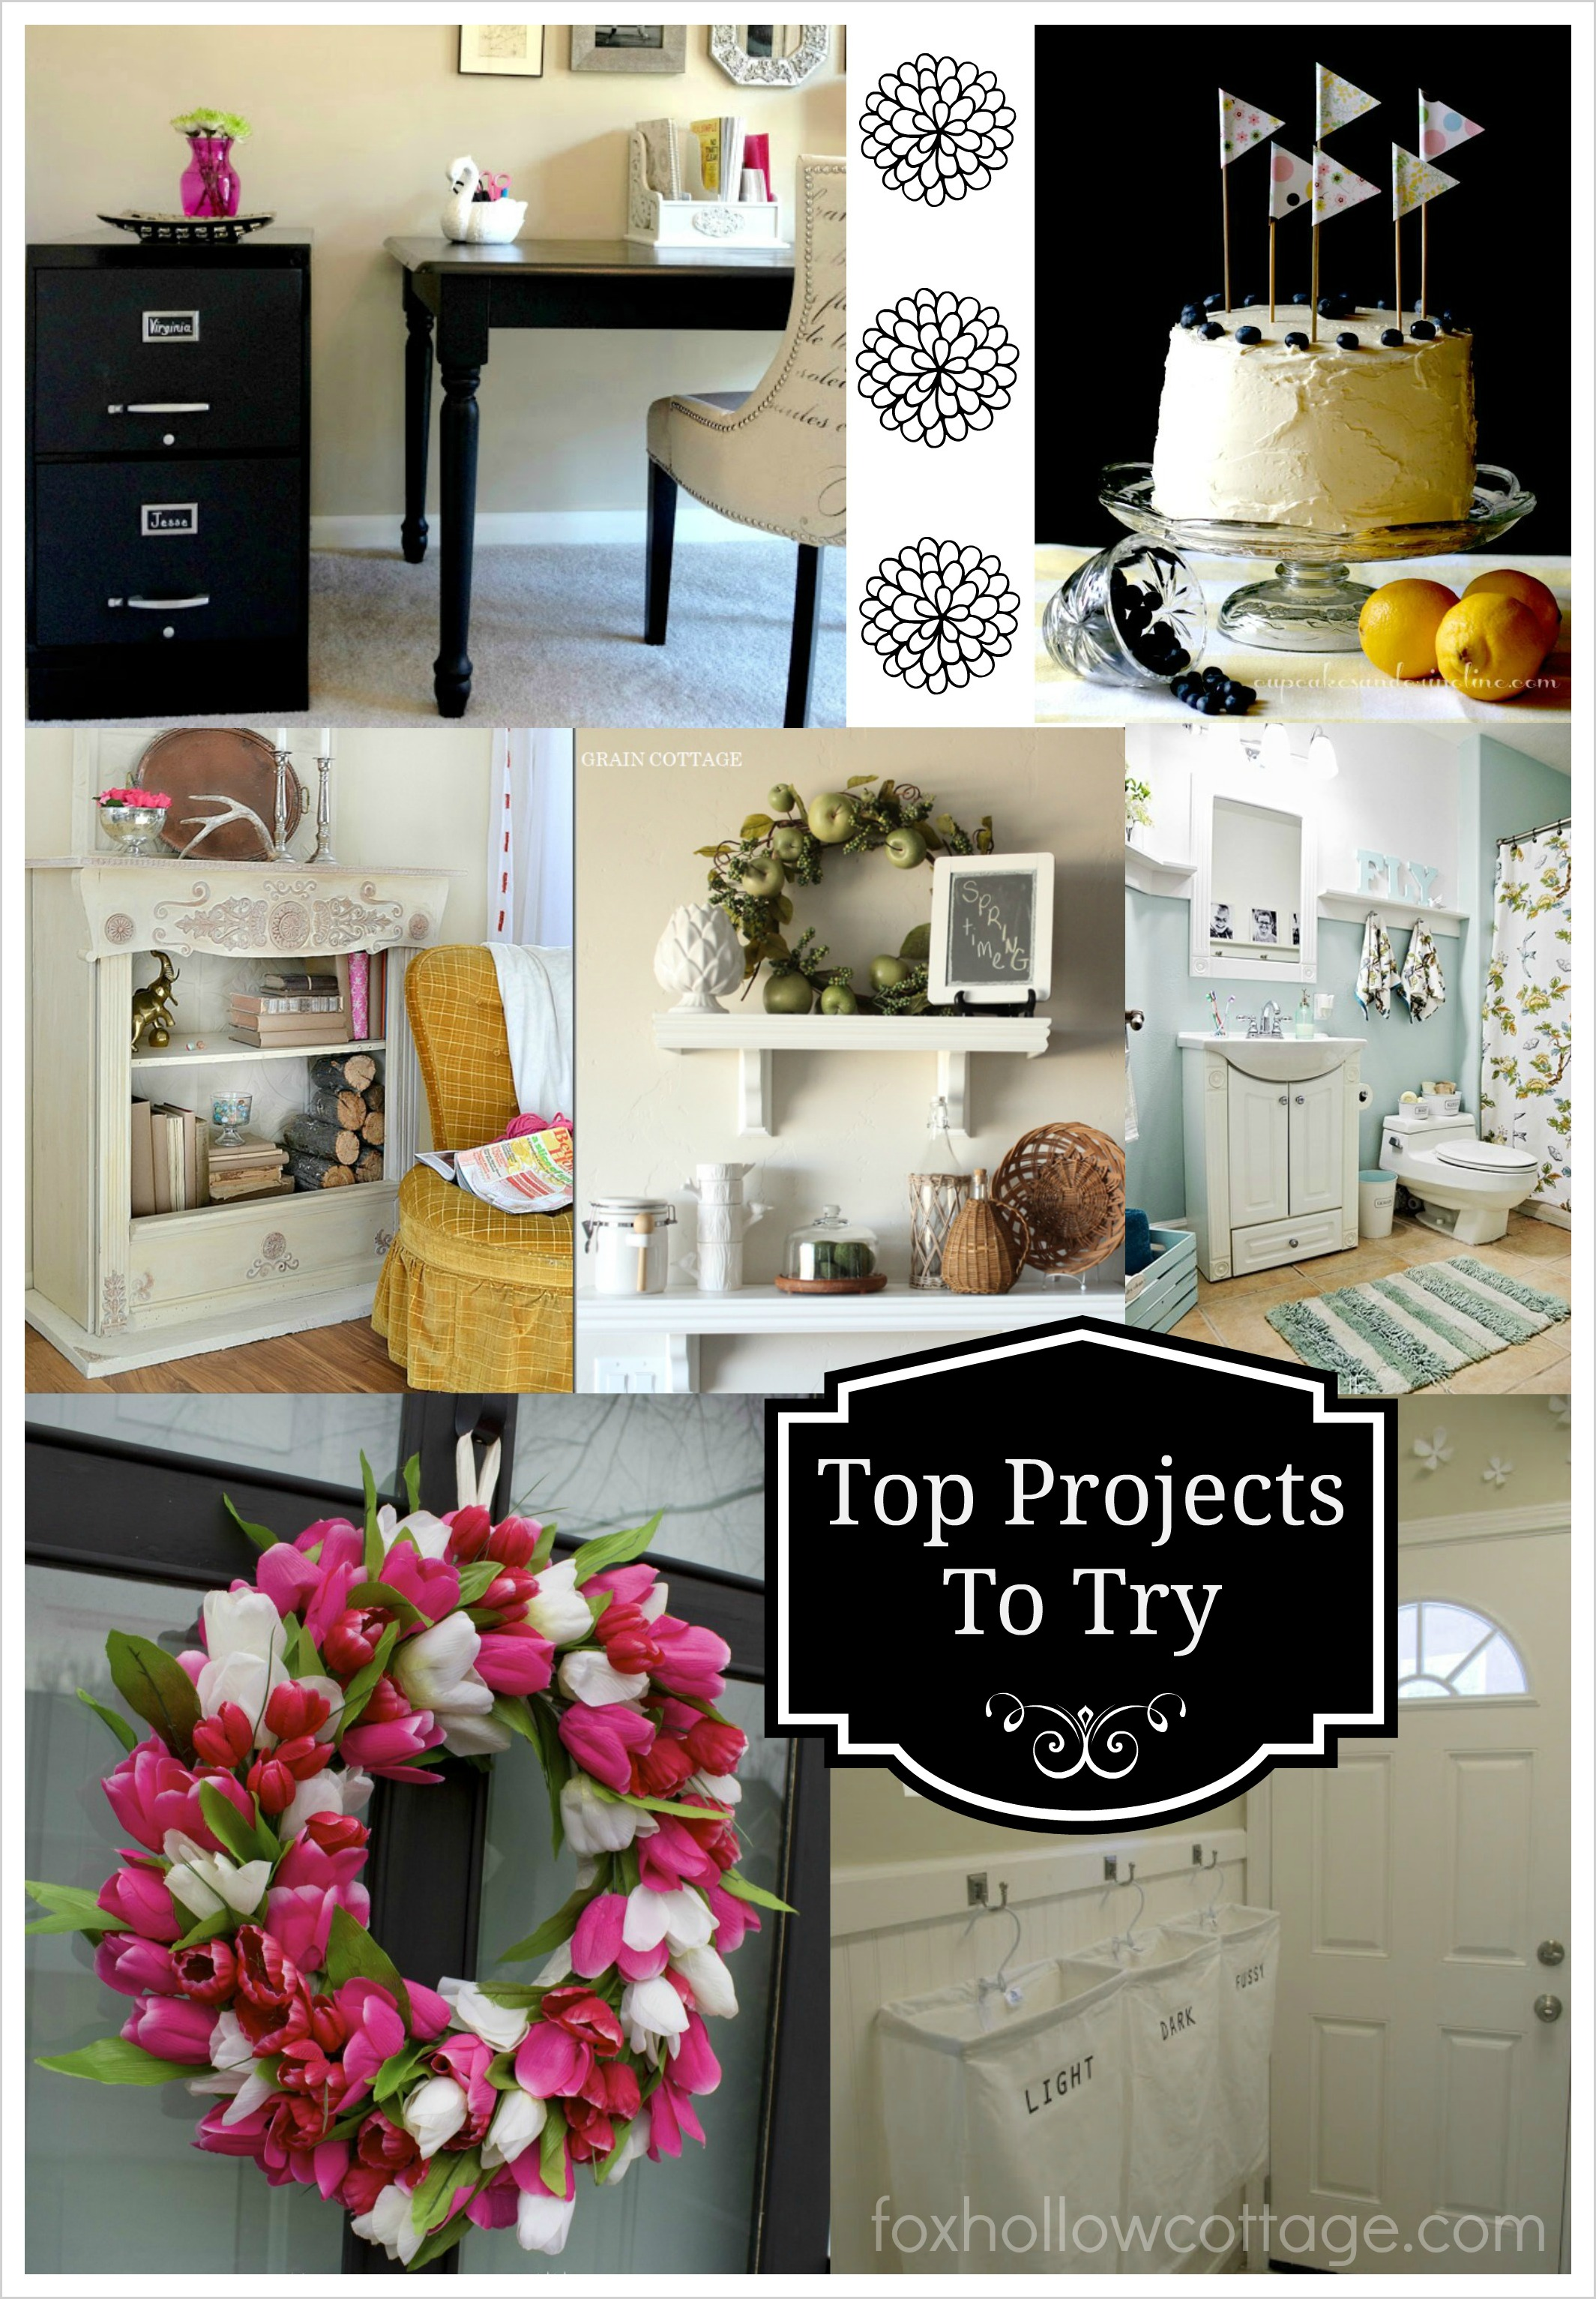 Power of pinterest link party and friday fav features Home decor modern pinterest